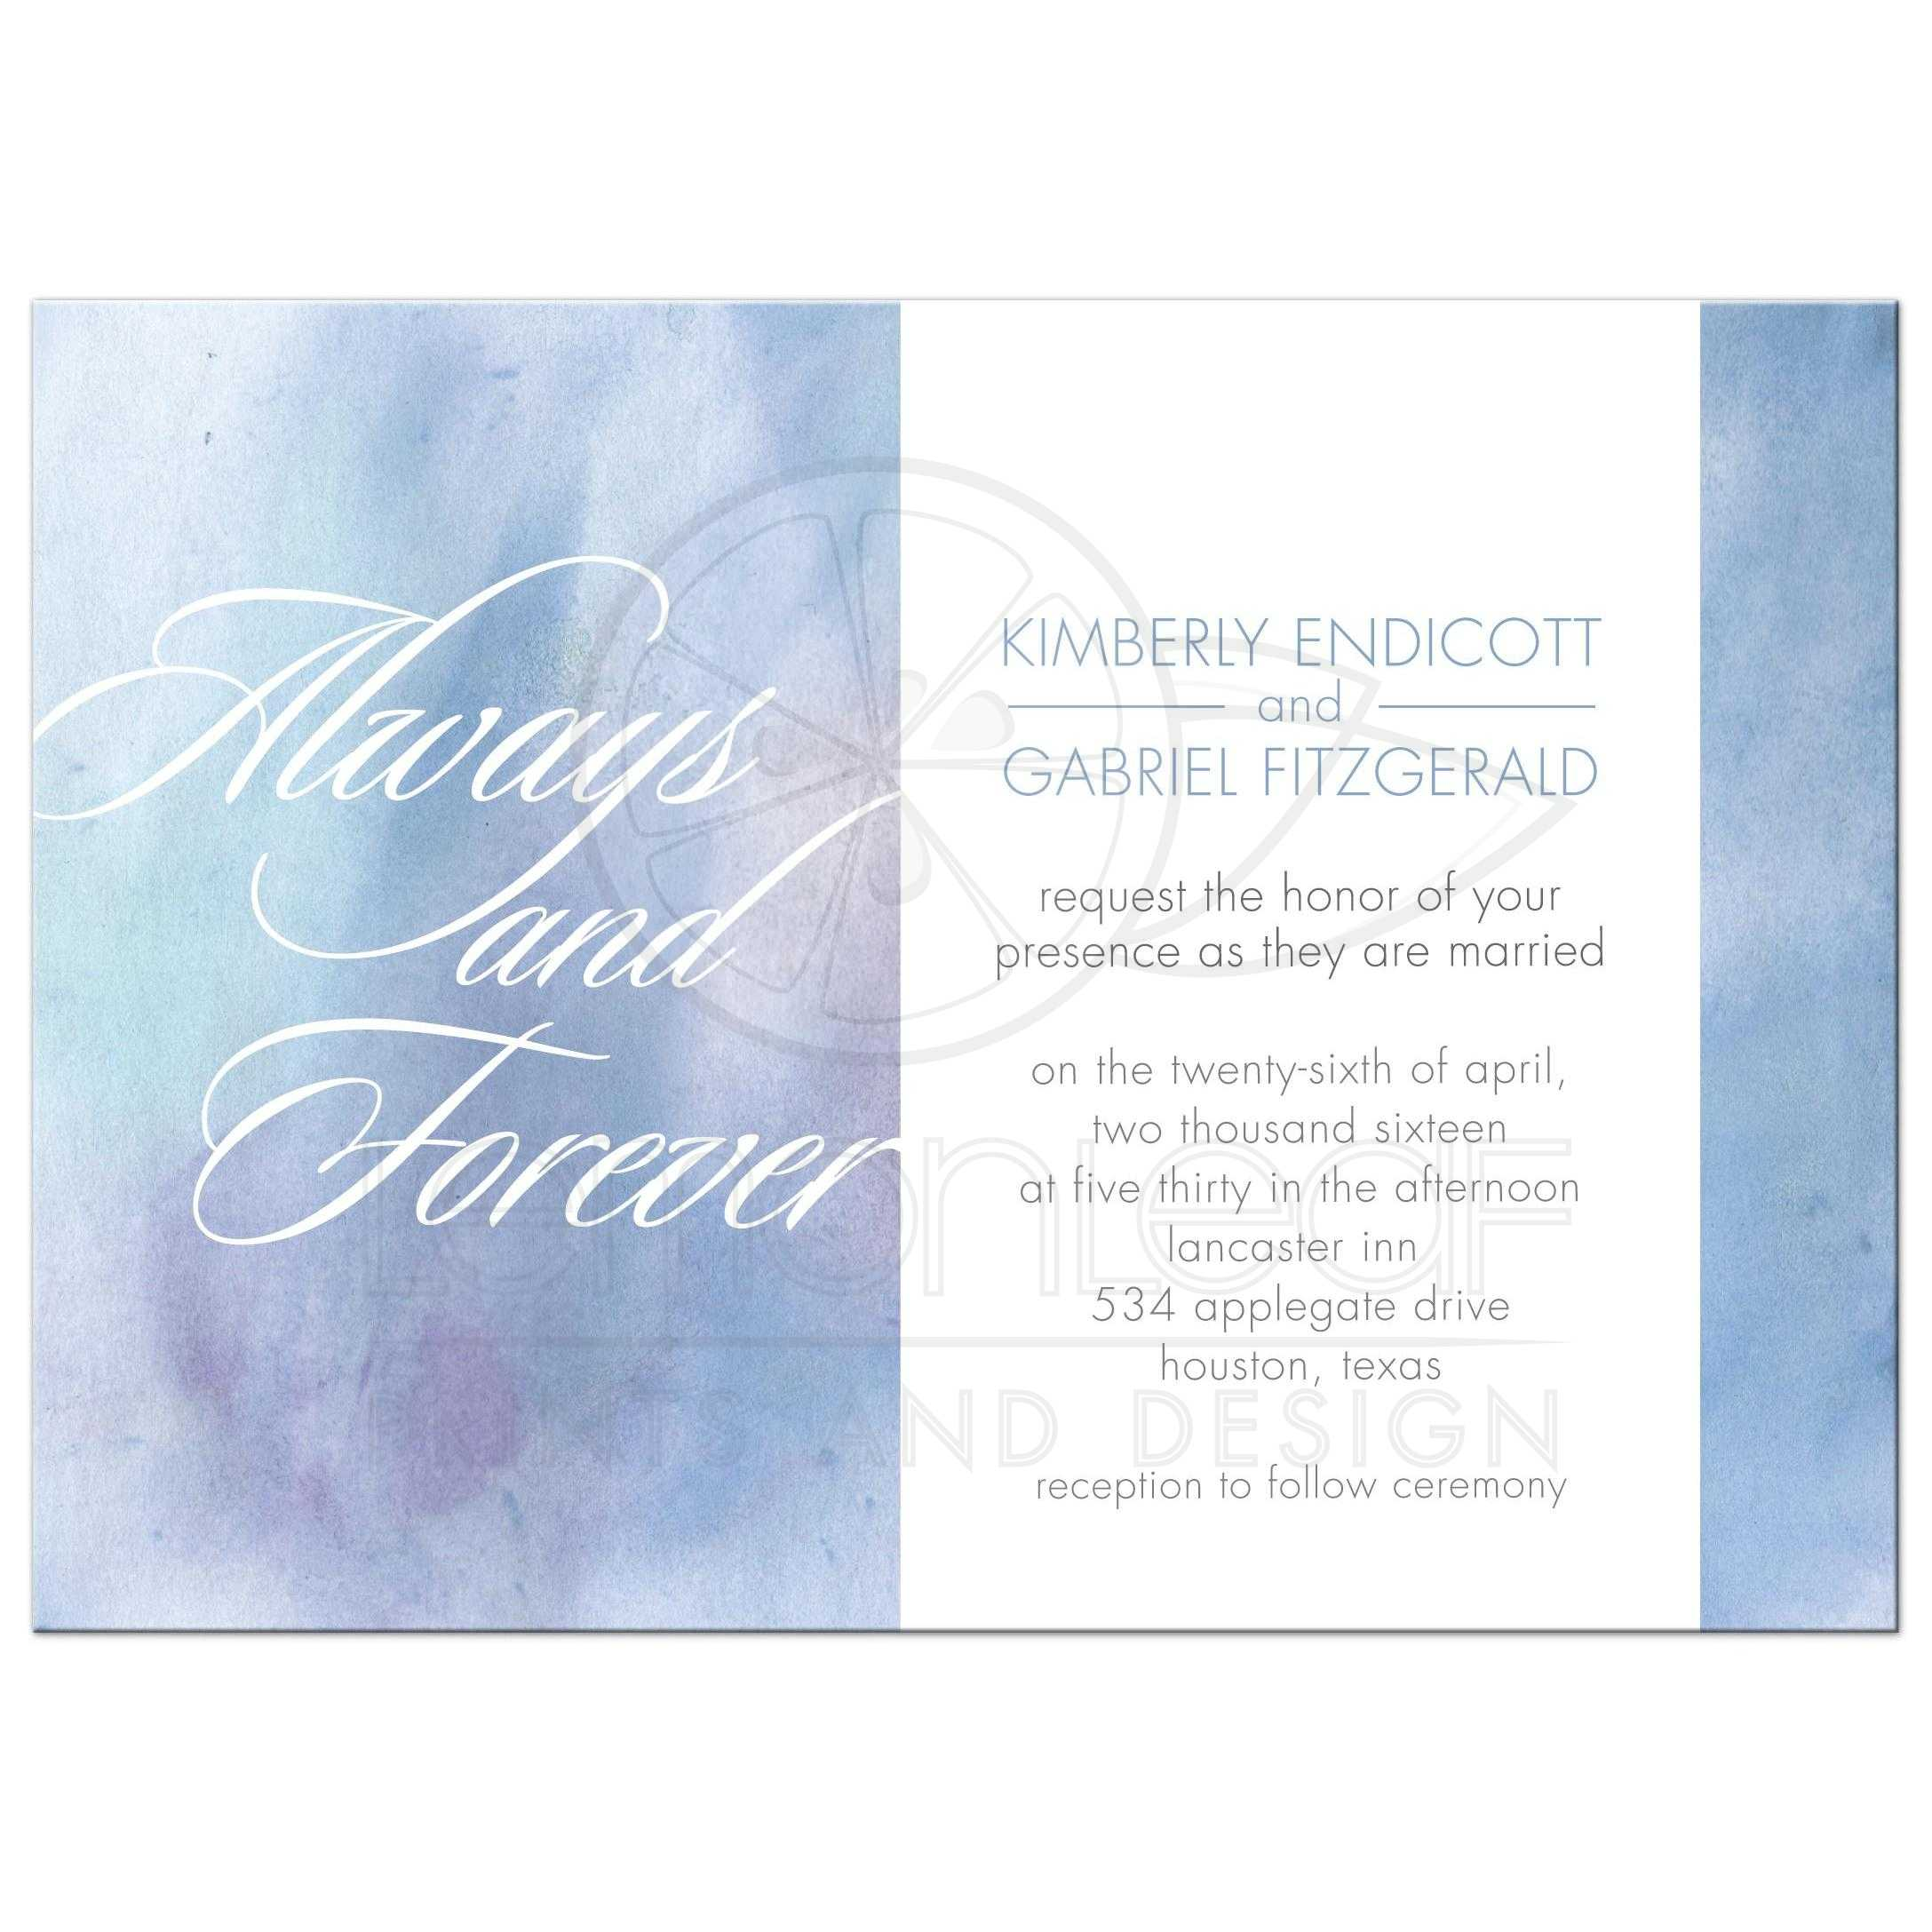 Wedding Invitation - Always and Forever Light Blue Watercolor Wash